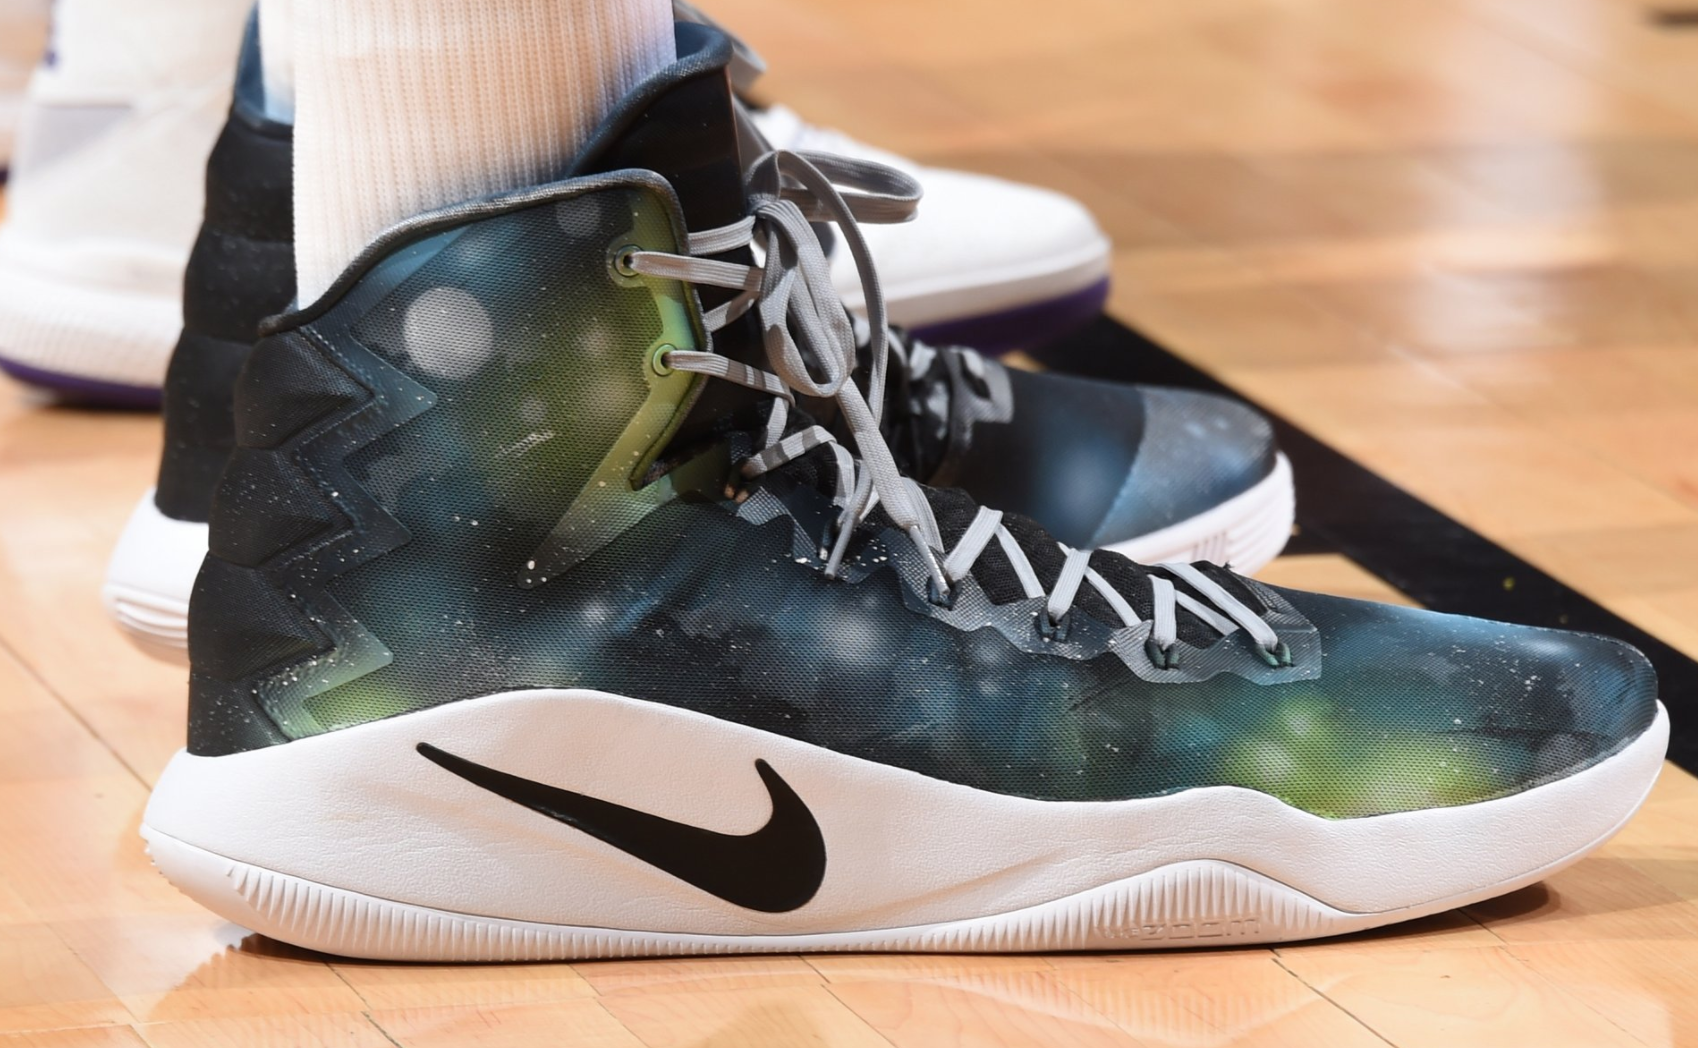 7073953c72e3 Let s take a have a look at what the players laced up for today s basketball  opener. Karl Anthony Towns in a custom Nike Hyperdunk ...